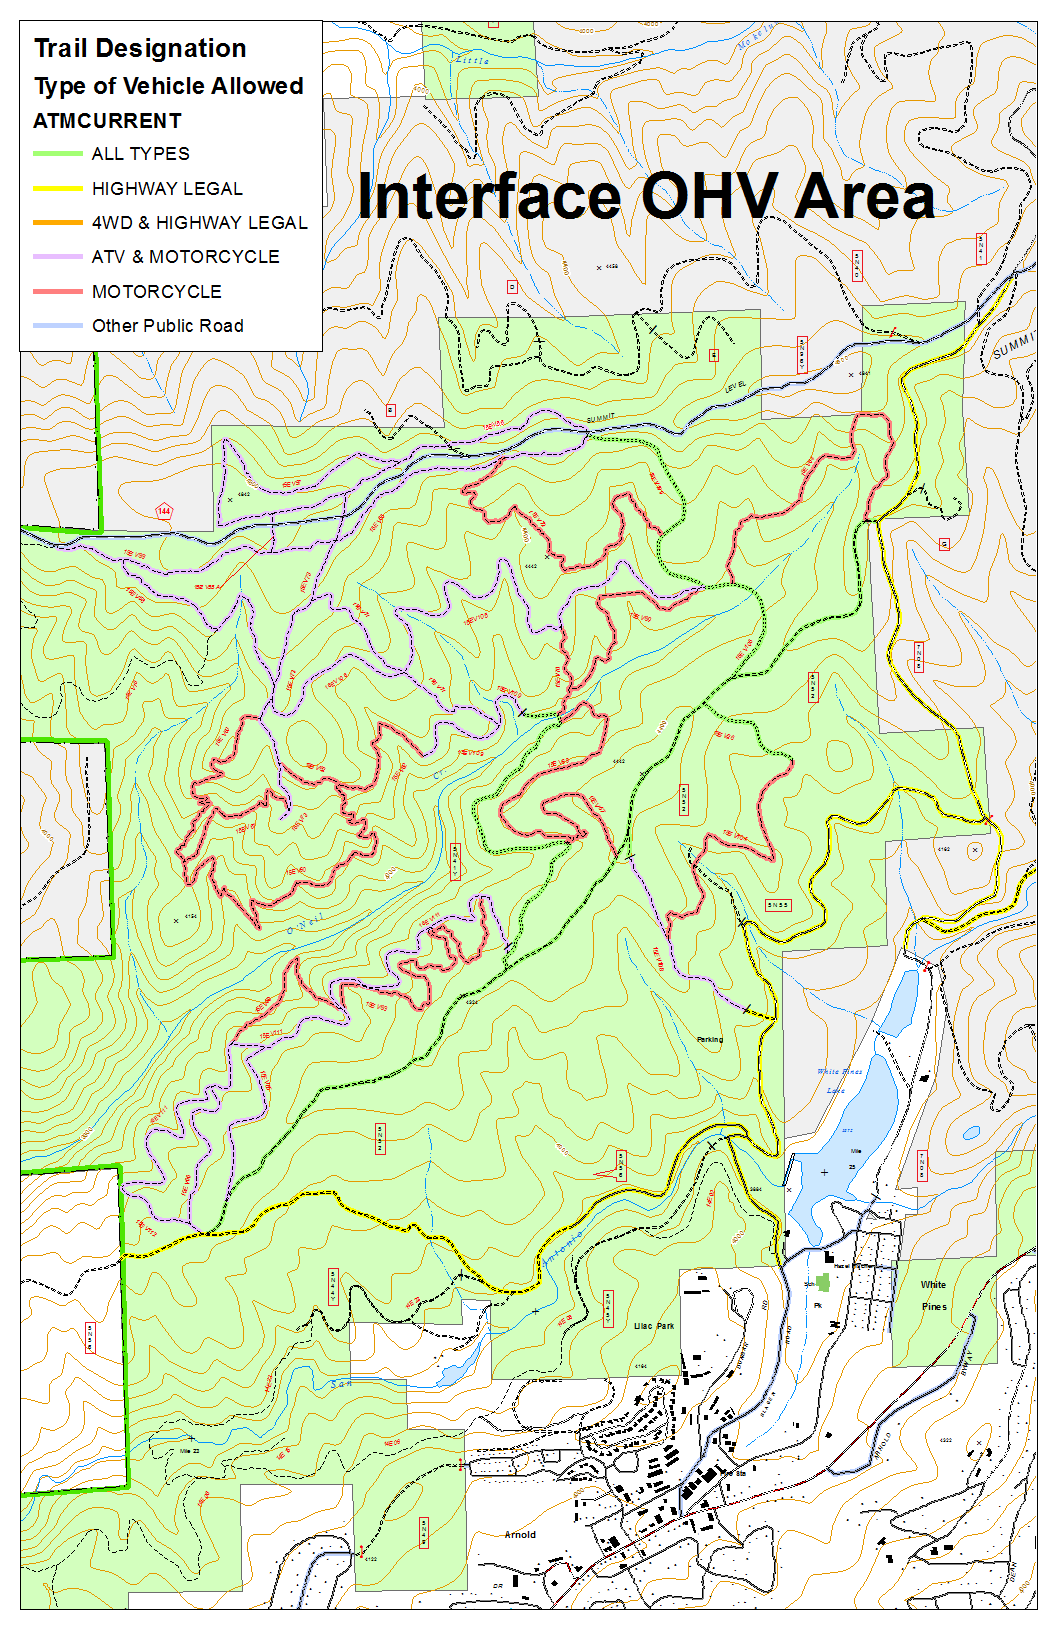 Stanislaus National Forest Interface Ohv Area